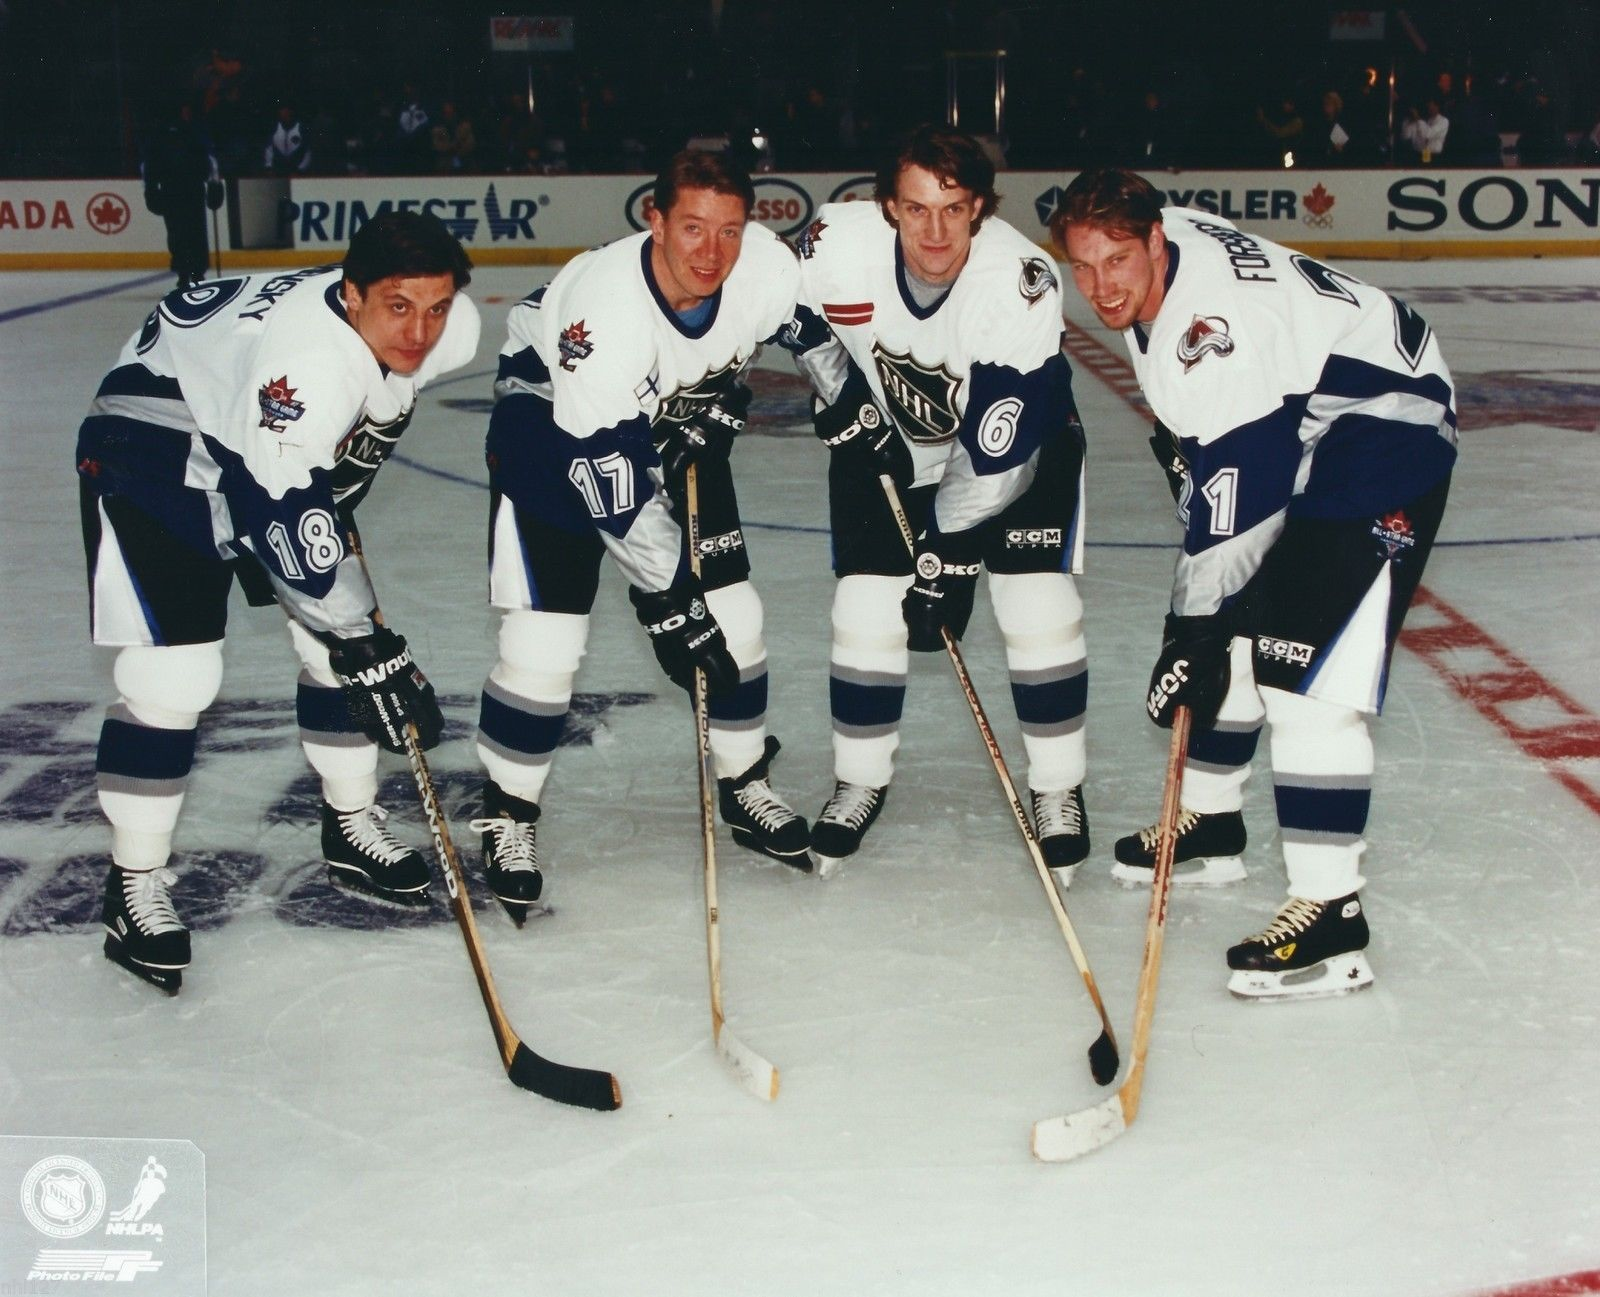 1998 Colorado Avalanche NHL All Star Game.JPG